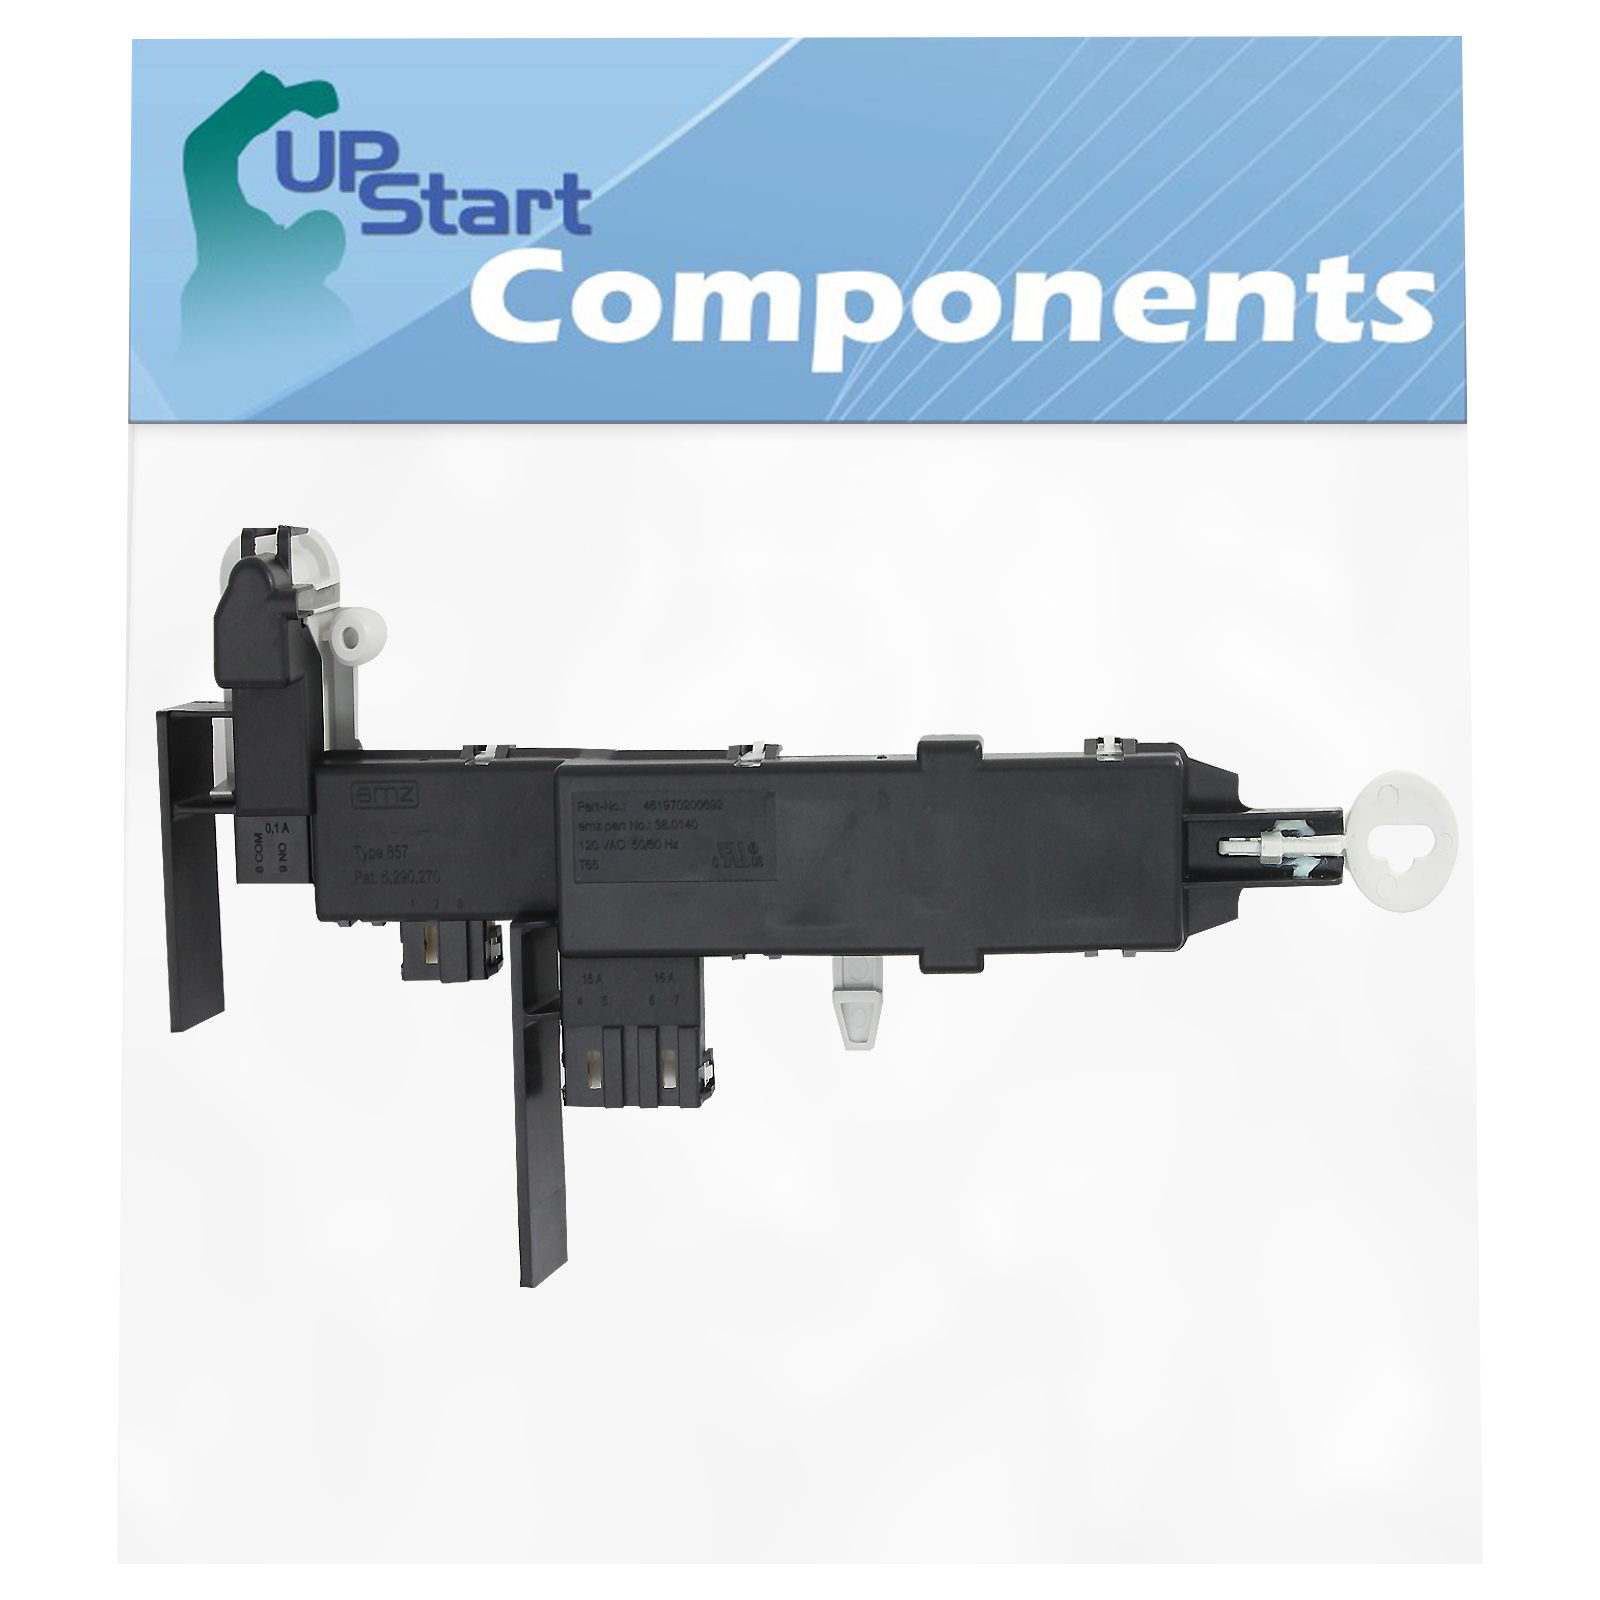 Compatible with DC64-00519B Washer Door Lock Switch Assembly 8182634 WP8182634 Washing Machine Door Latch Lock Replacement for Kenmore//Sears 110.44832200 Washer